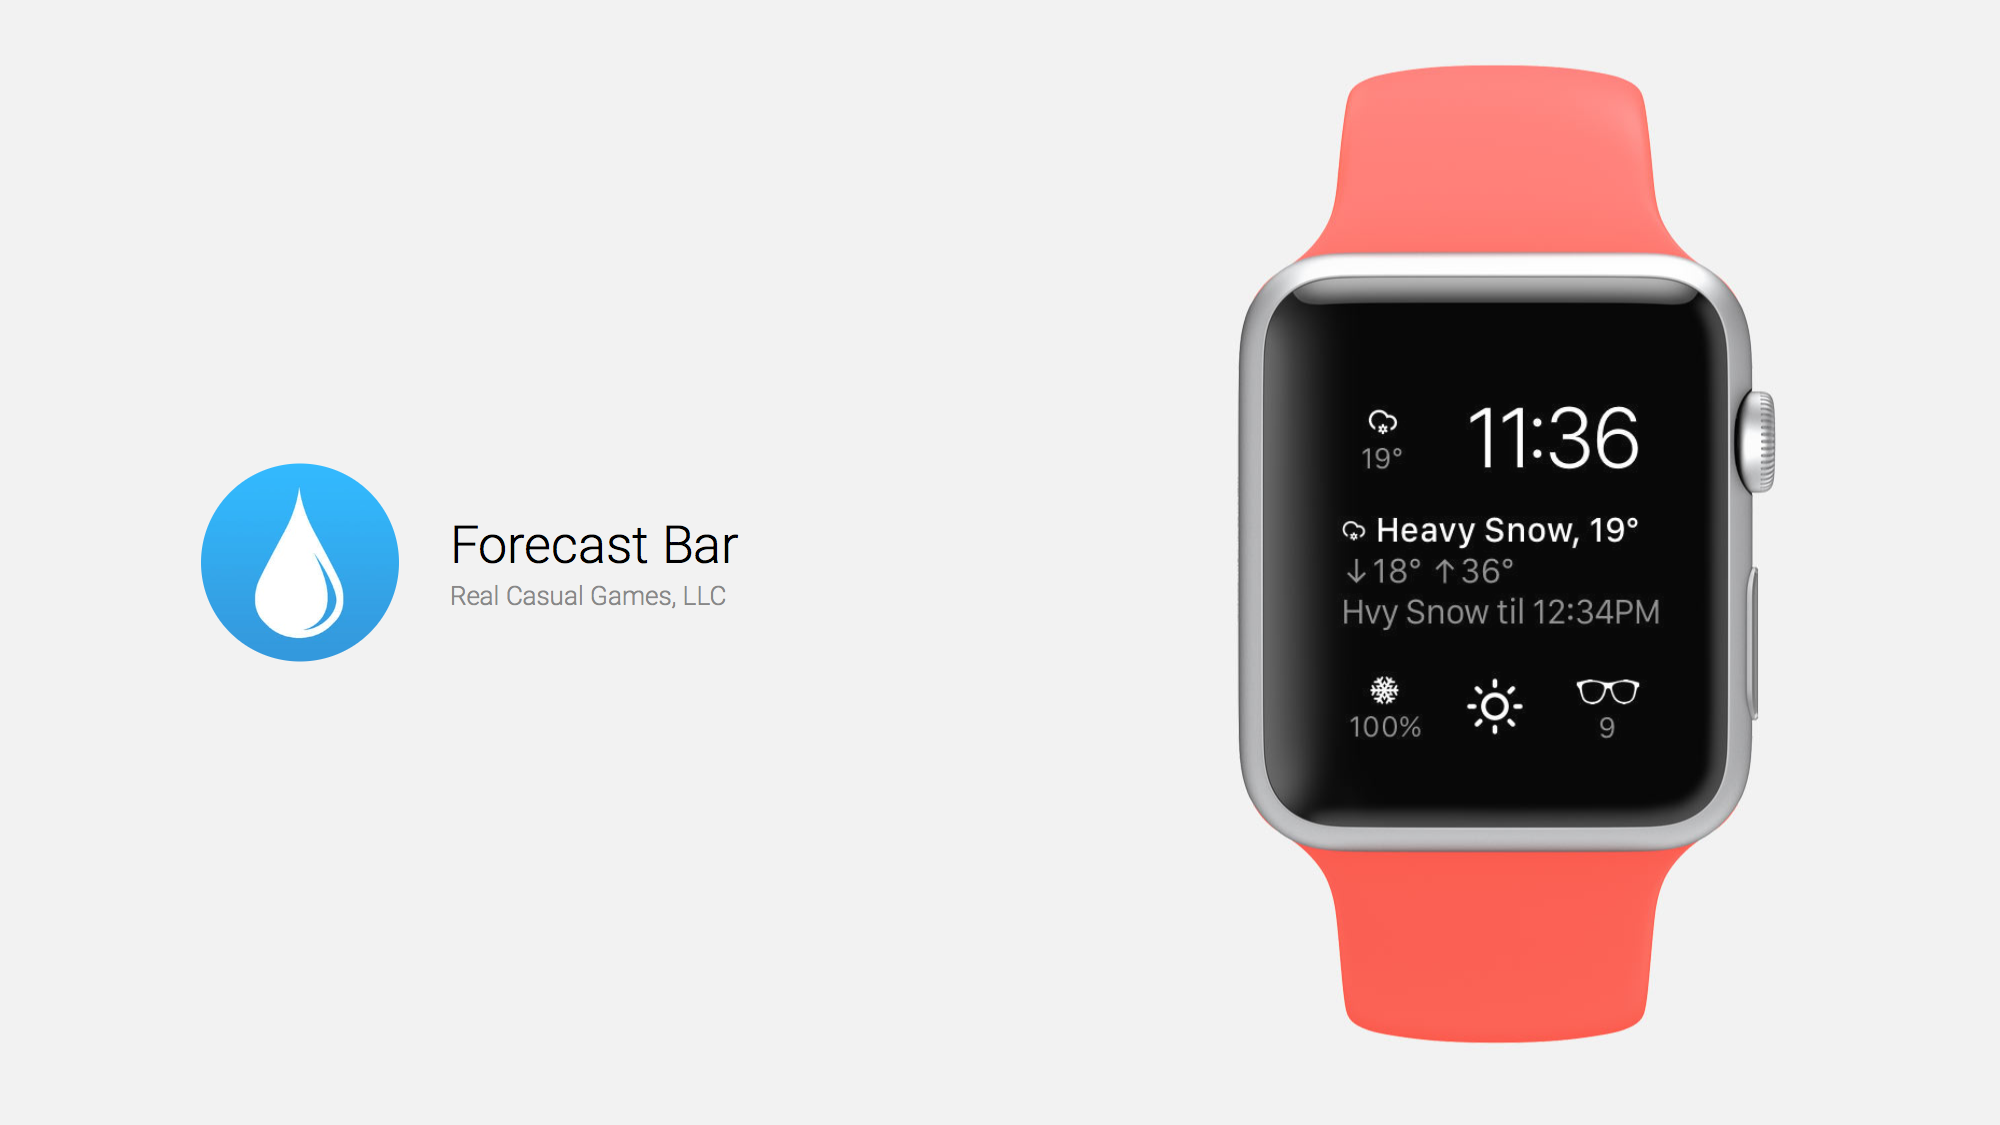 Forecast Bar is a Fantastic Weather App for Apple Watch